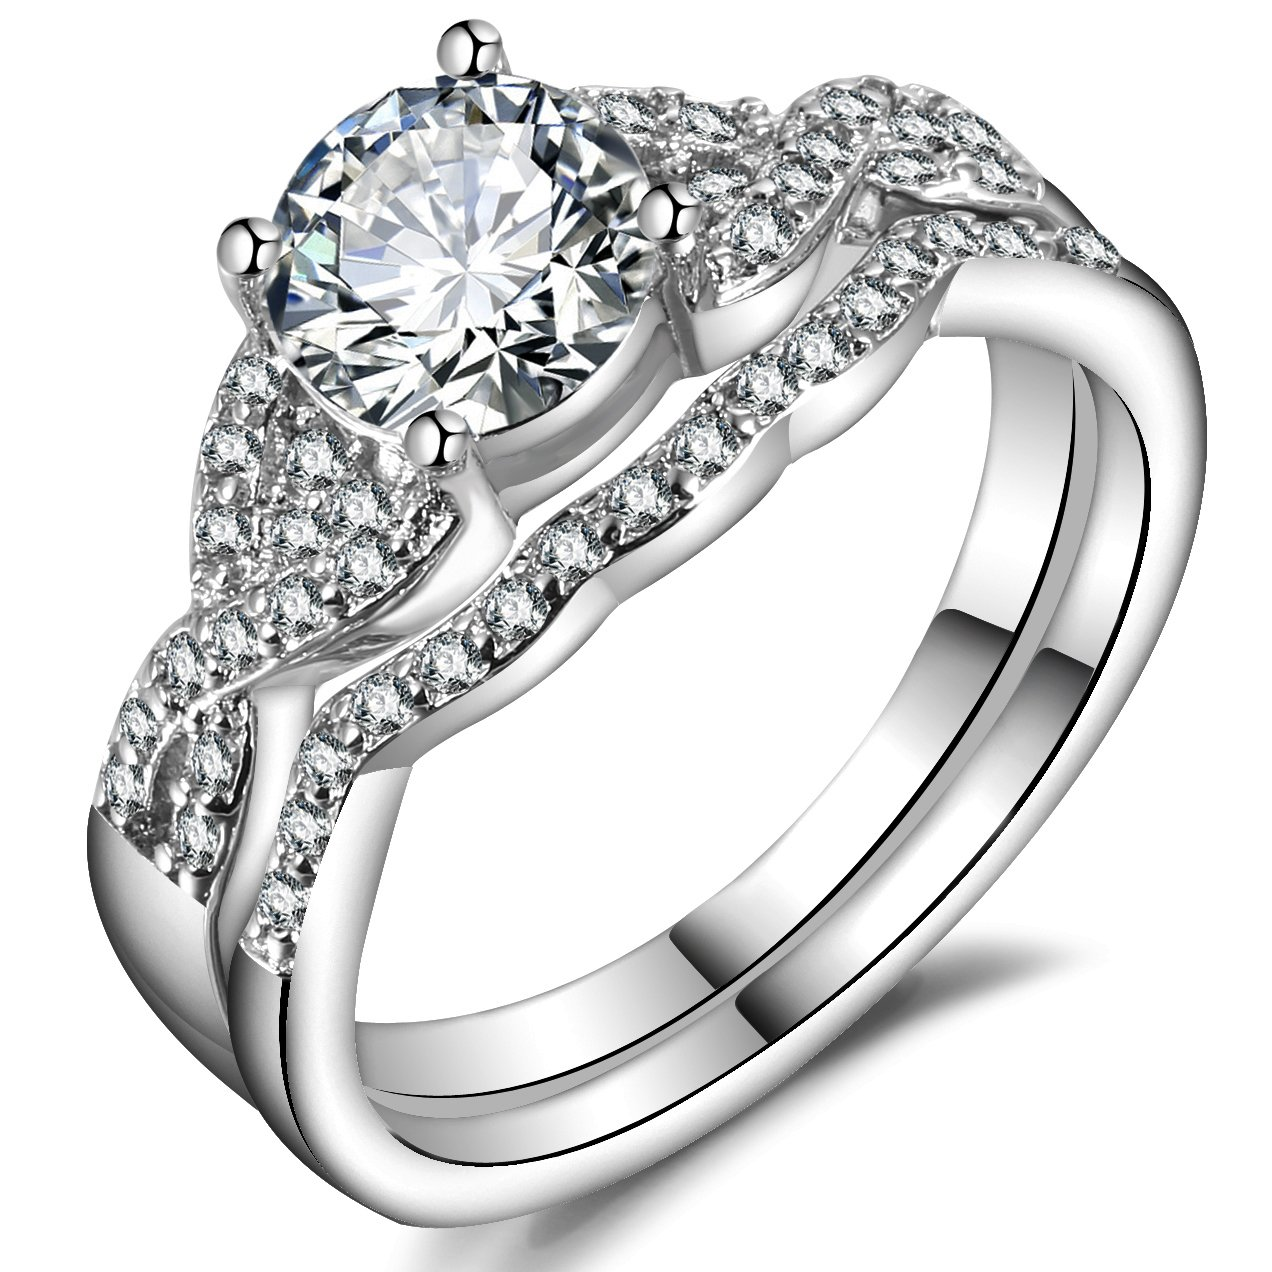 Hiyong Engagement Infinity Stacking Band Rings - Round Cut Cz Bridal Wedding Rings Set for Women Size 6-9 (10)